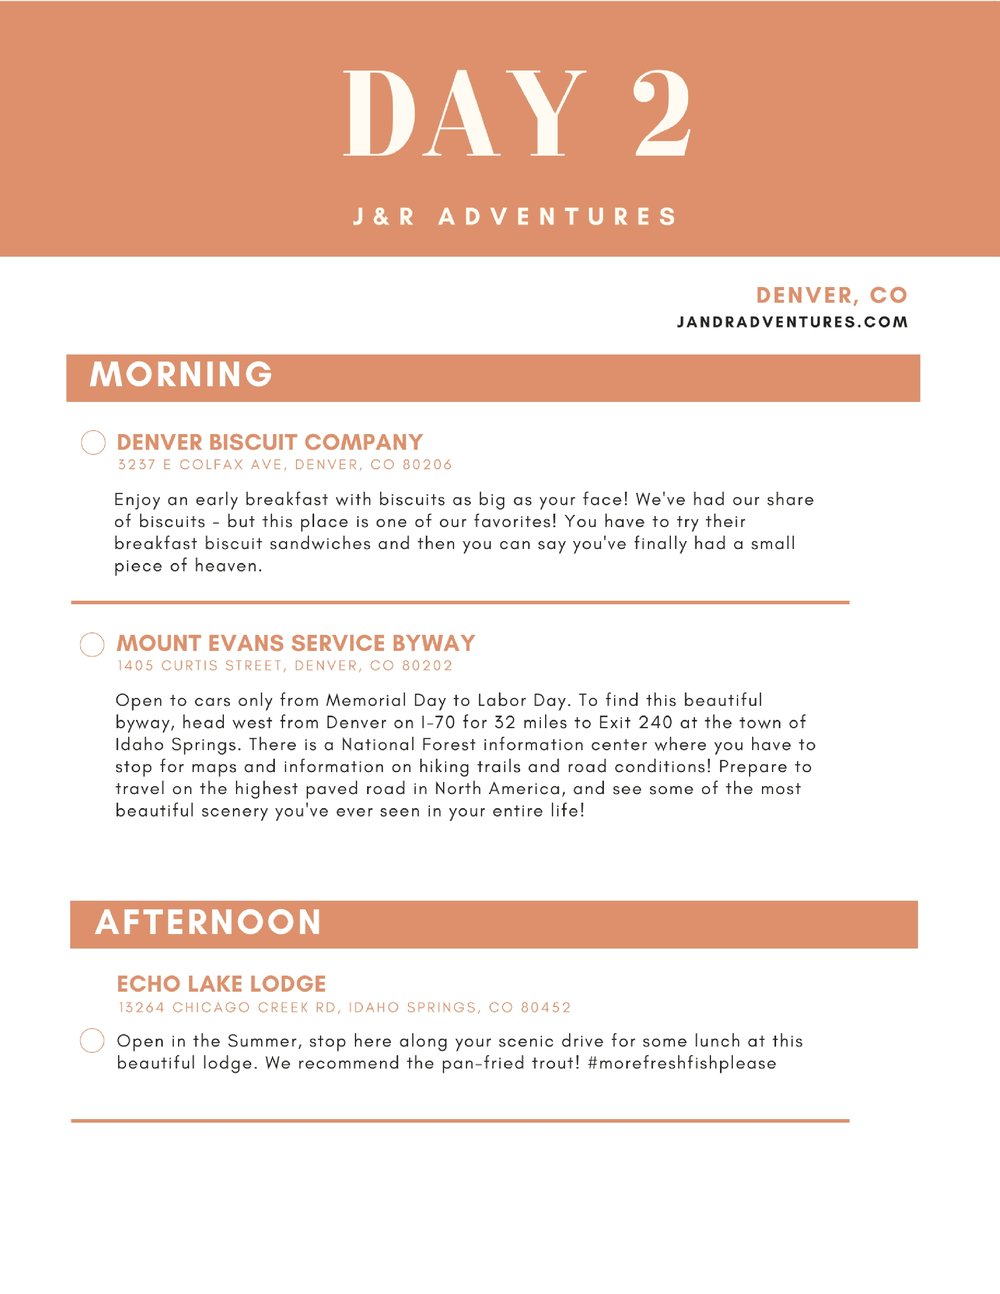 denver, co 3 day detailed itinerary(4).jpg